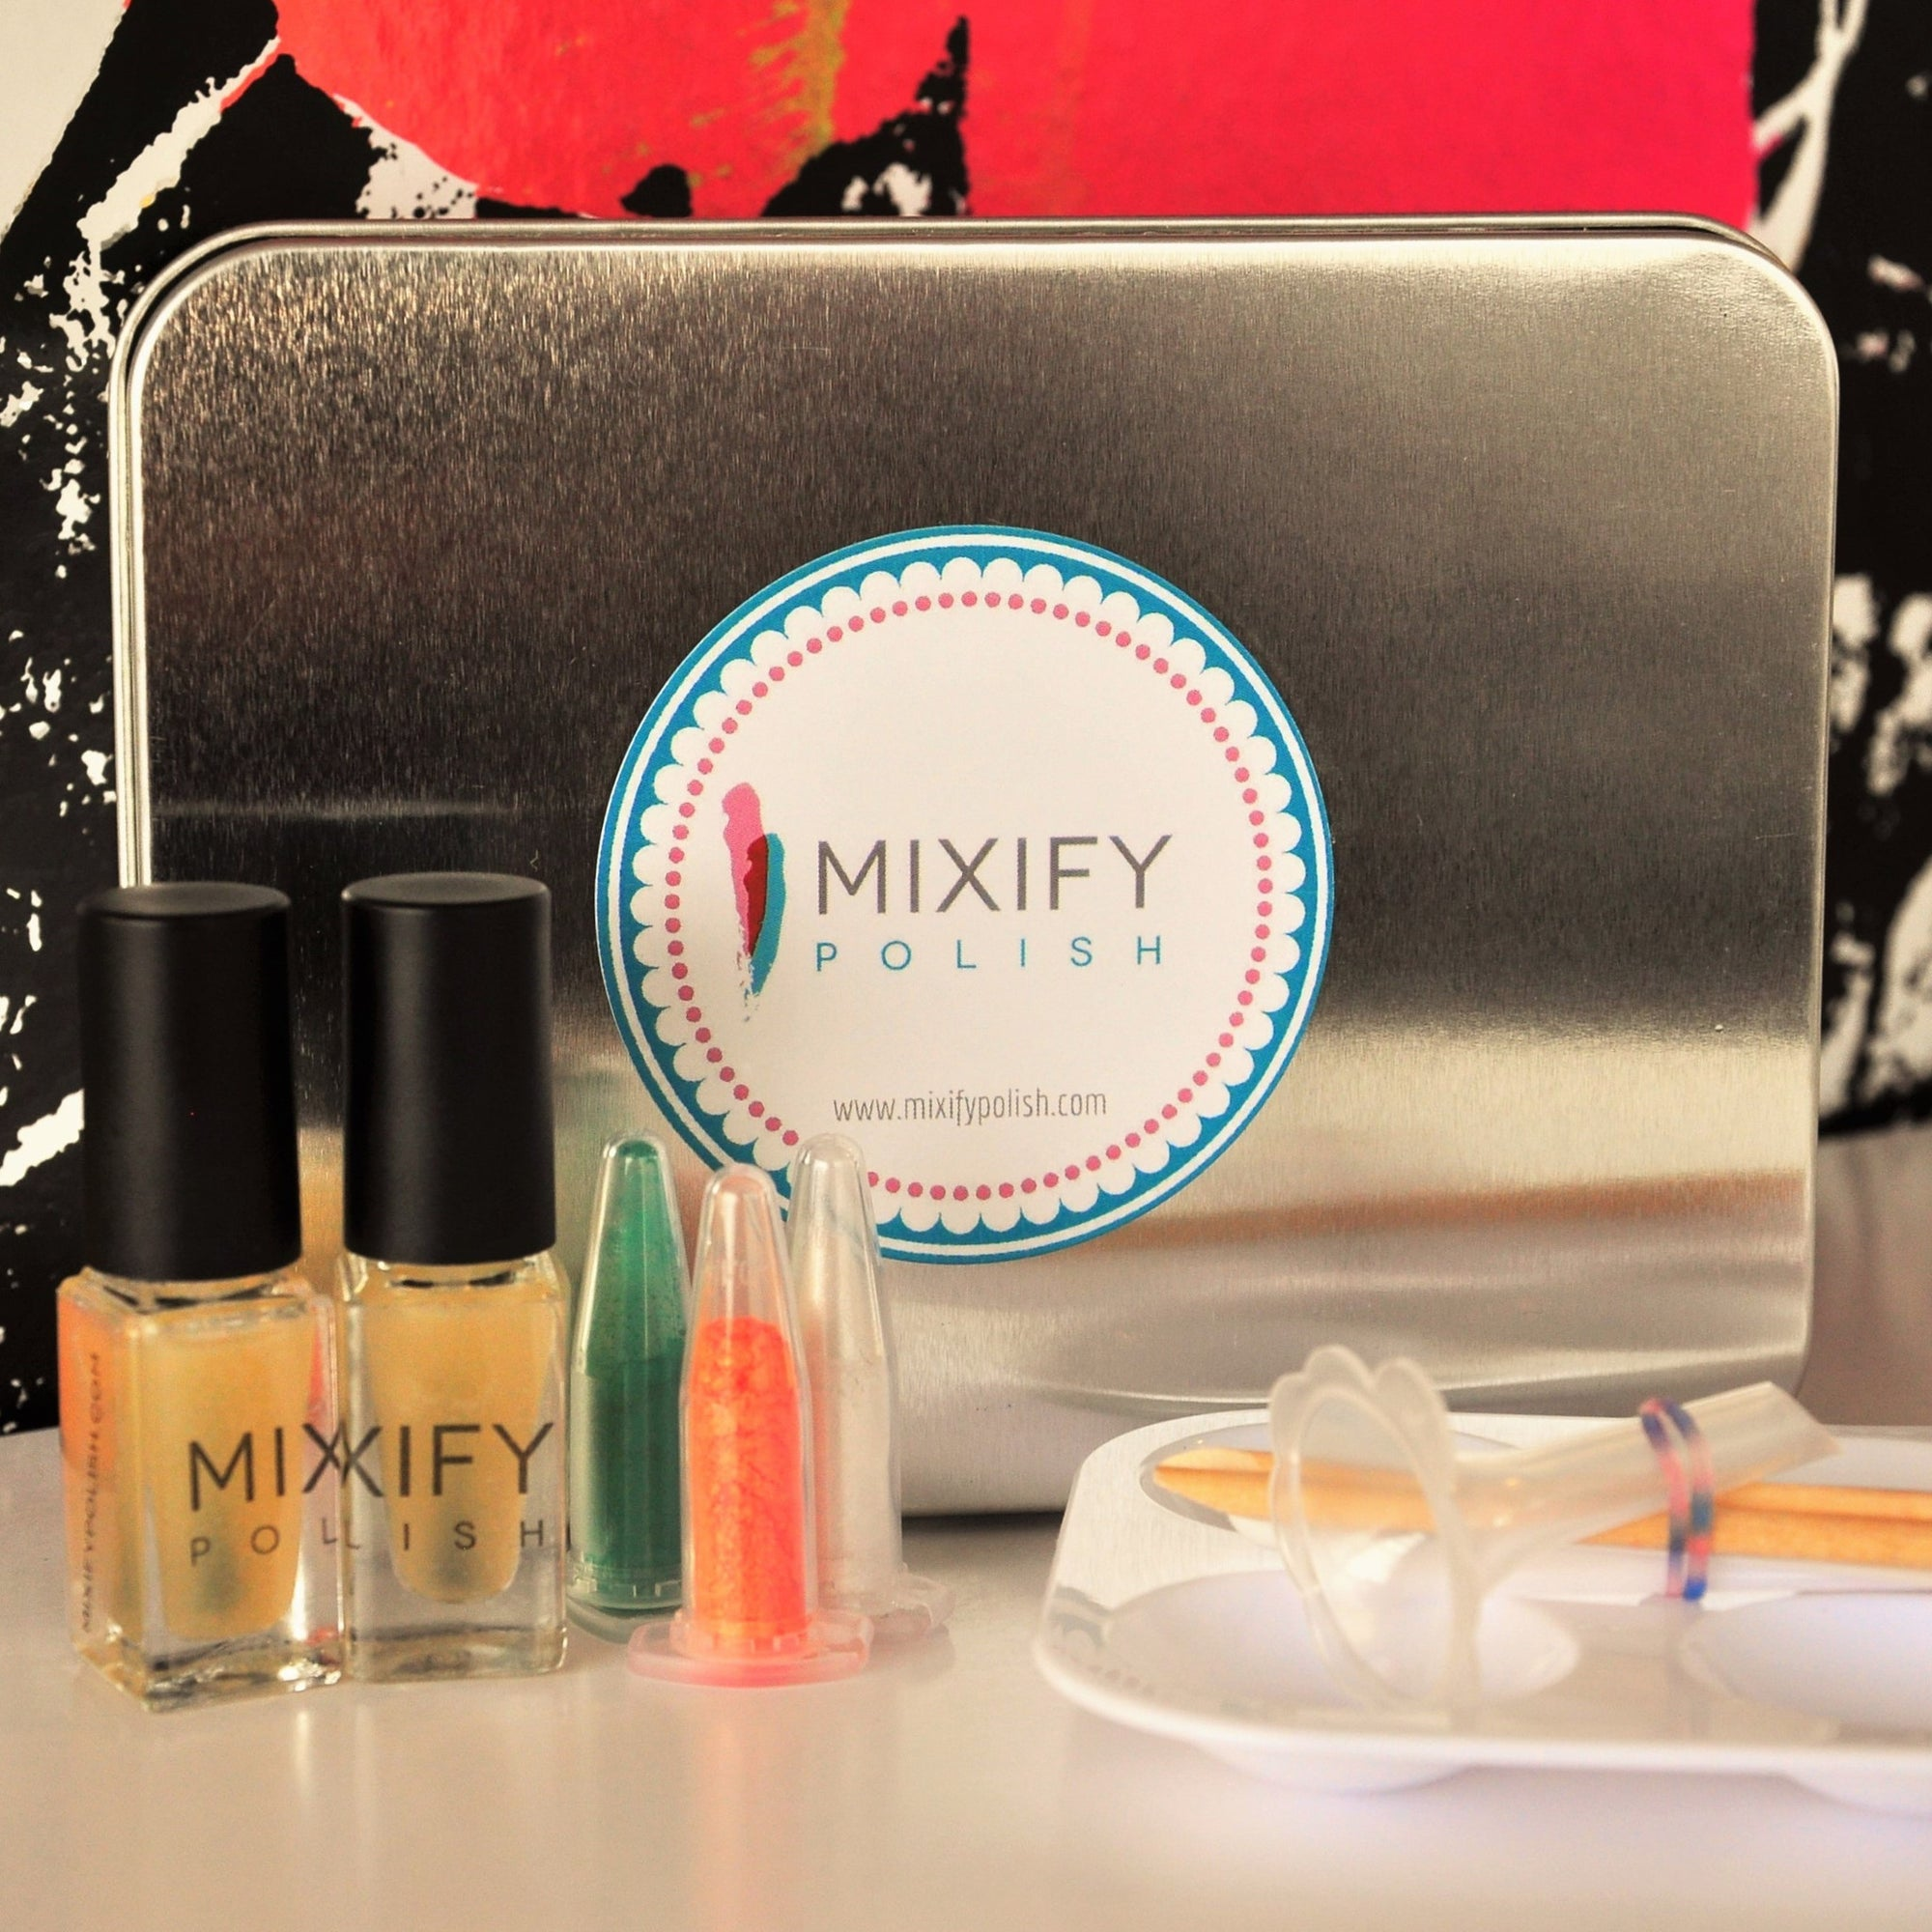 Mixify Polish Gifts Innovative Create Your Signature Nail Polish DIY Mini Kit to Celebrities and Press at GBK's Pre-MTV Movie Awards Celebrity Gift Lounge